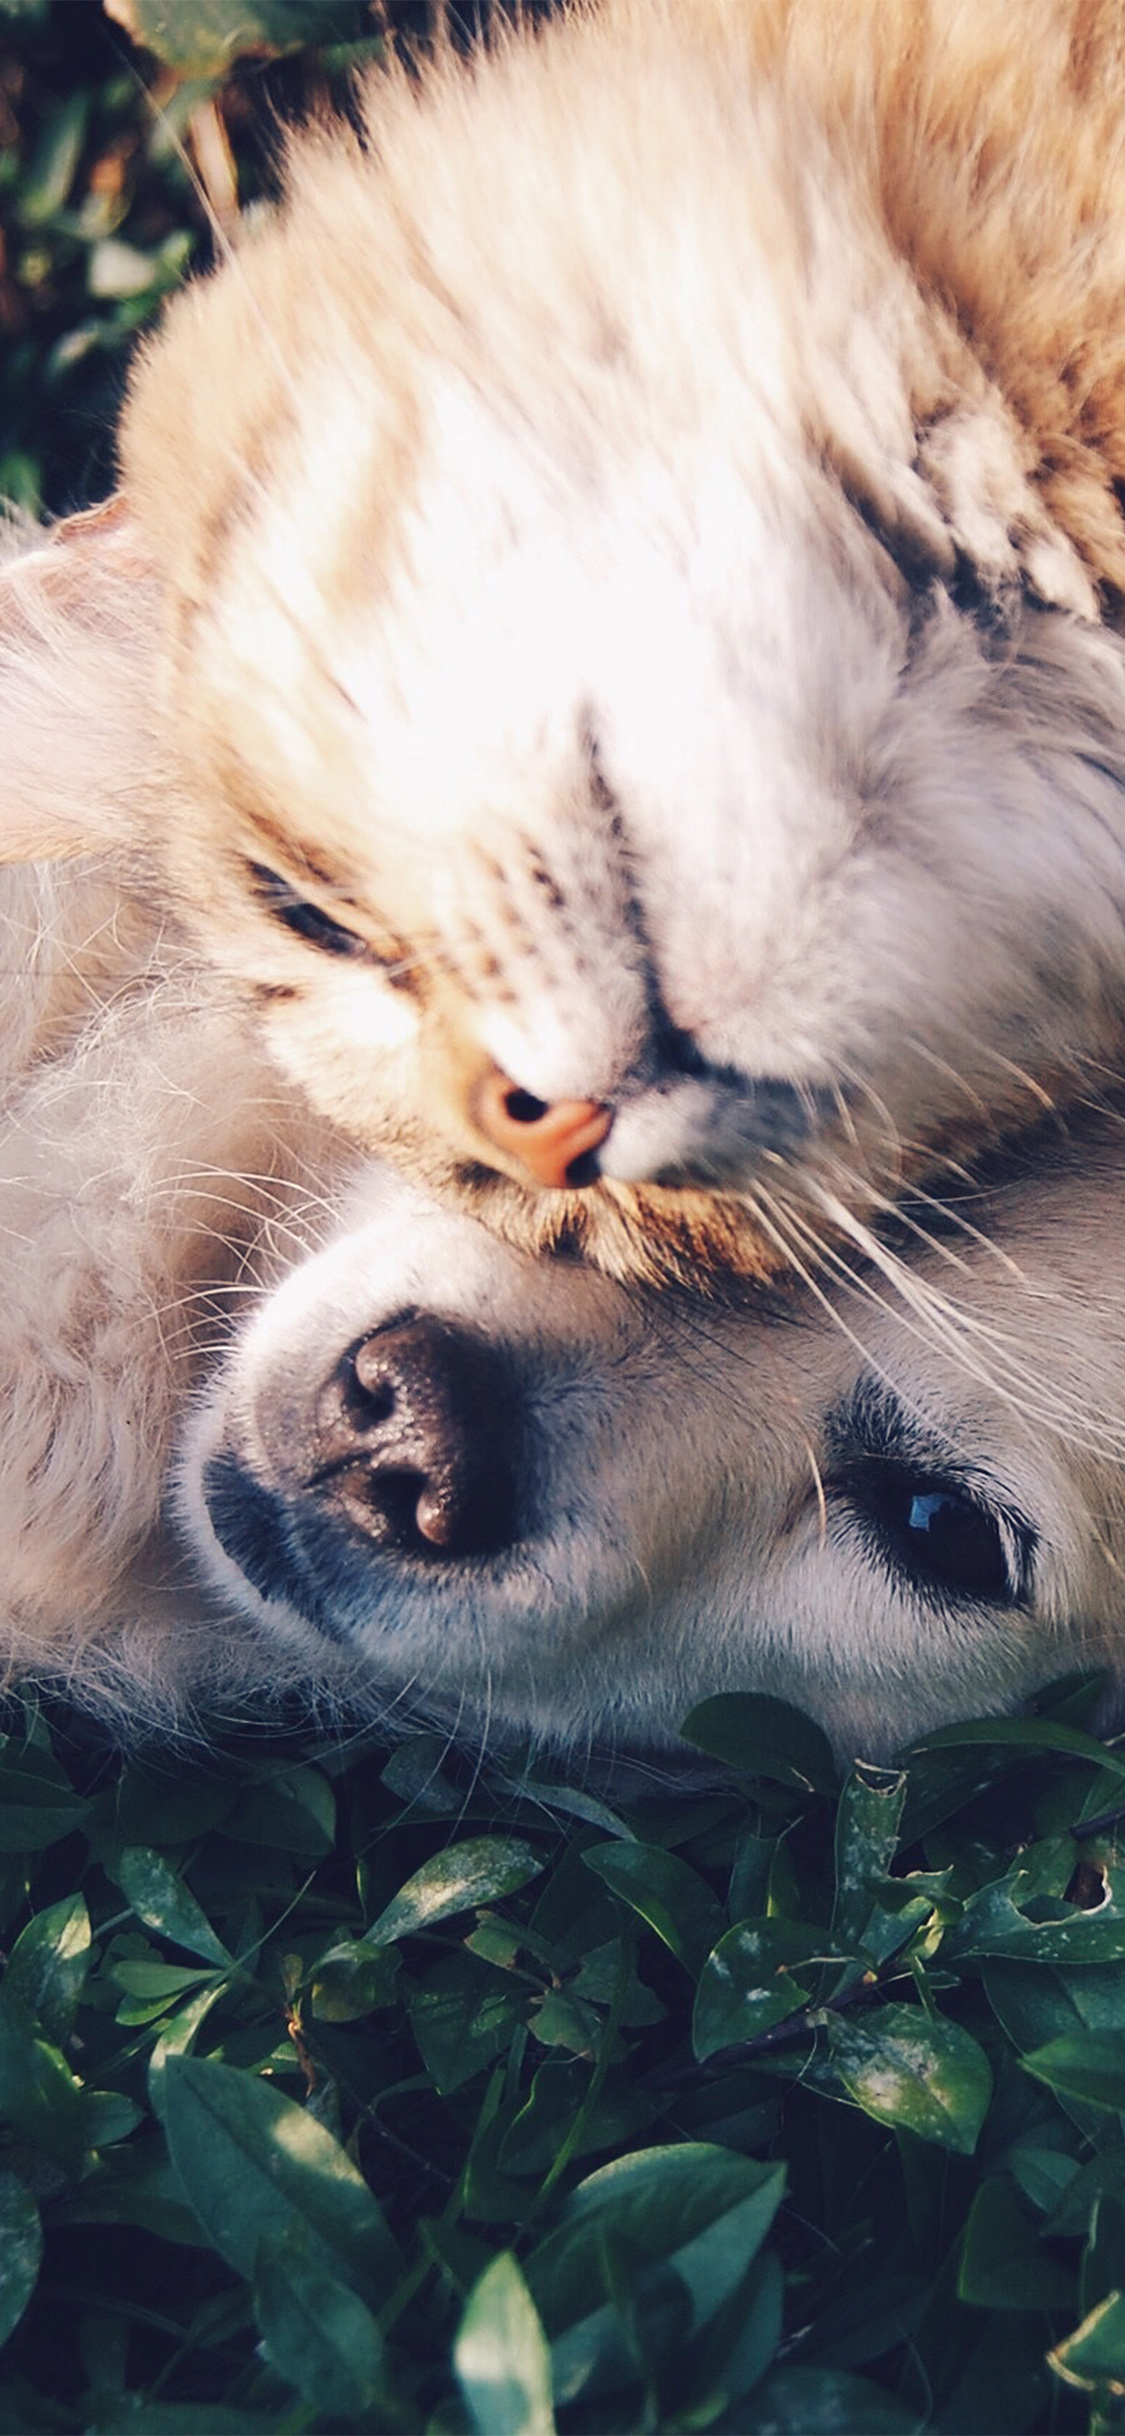 iPhoneXpapers.com-Apple-iPhone-wallpaper-nf34-cat-and-dog-animal-love-nature-pure